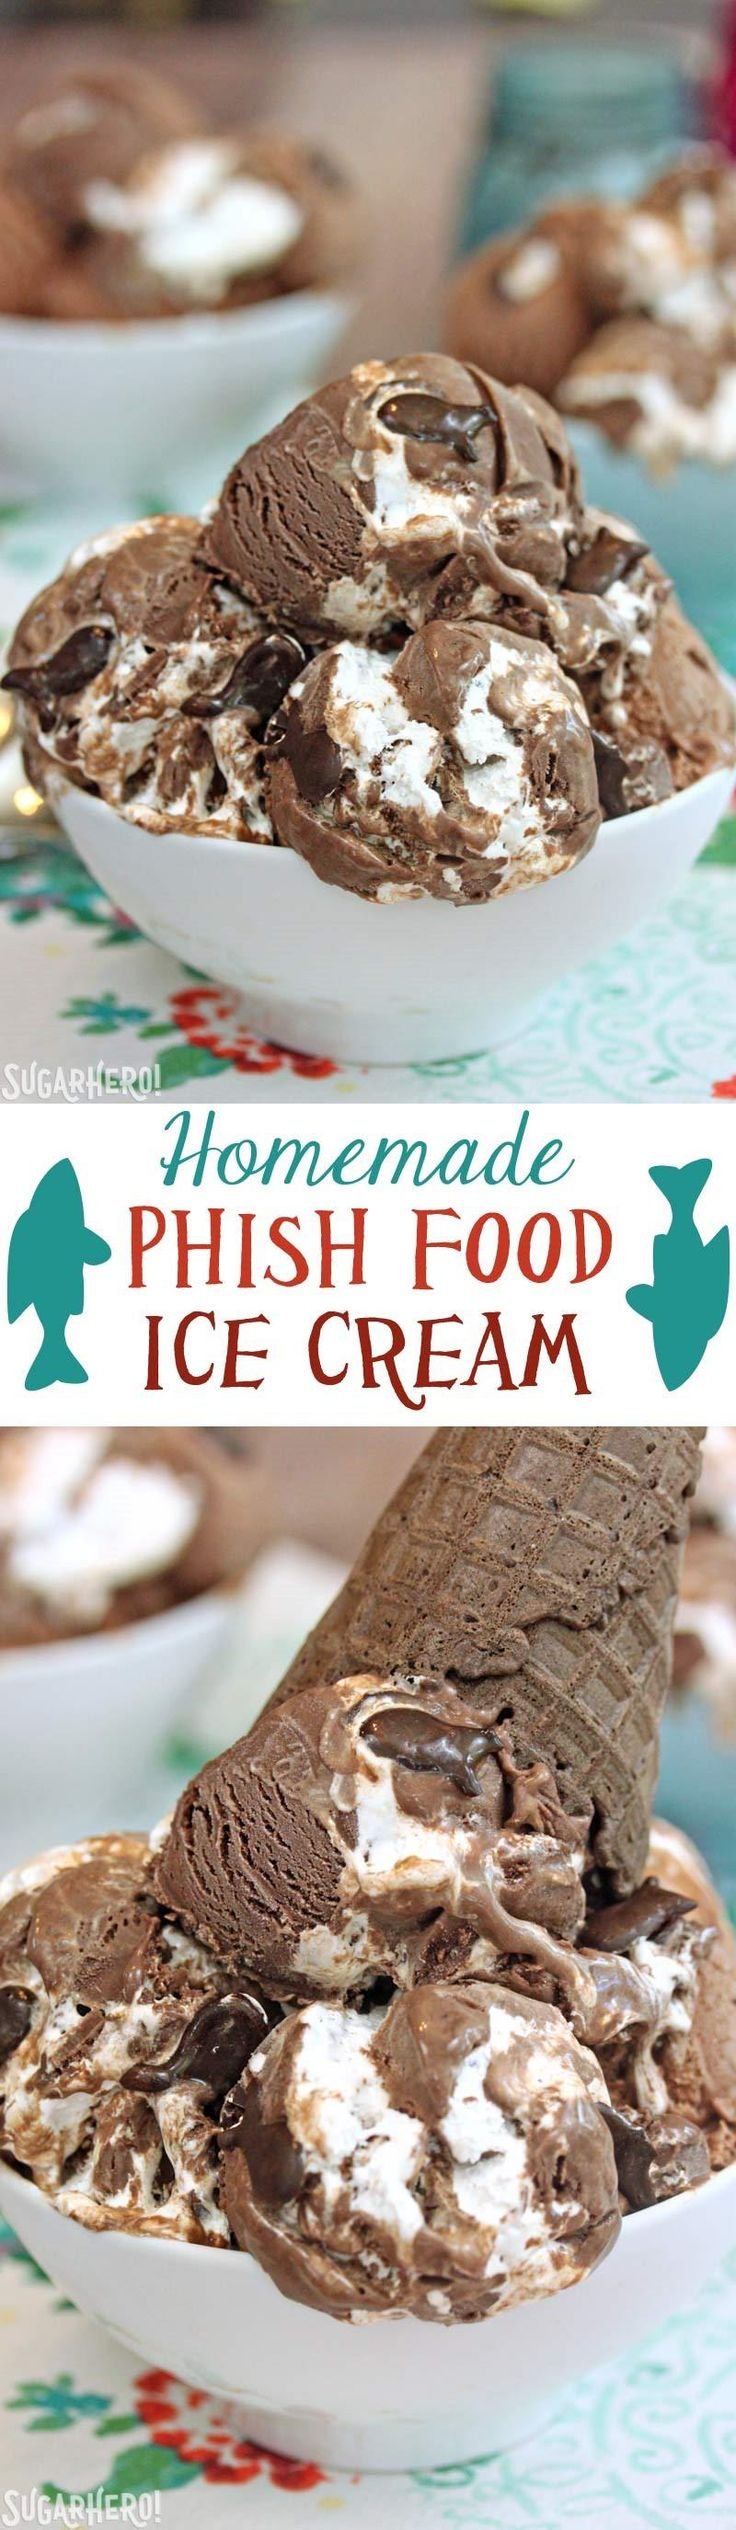 Homemade Phish Food Ice Cream                                                                                                                                                                                 More